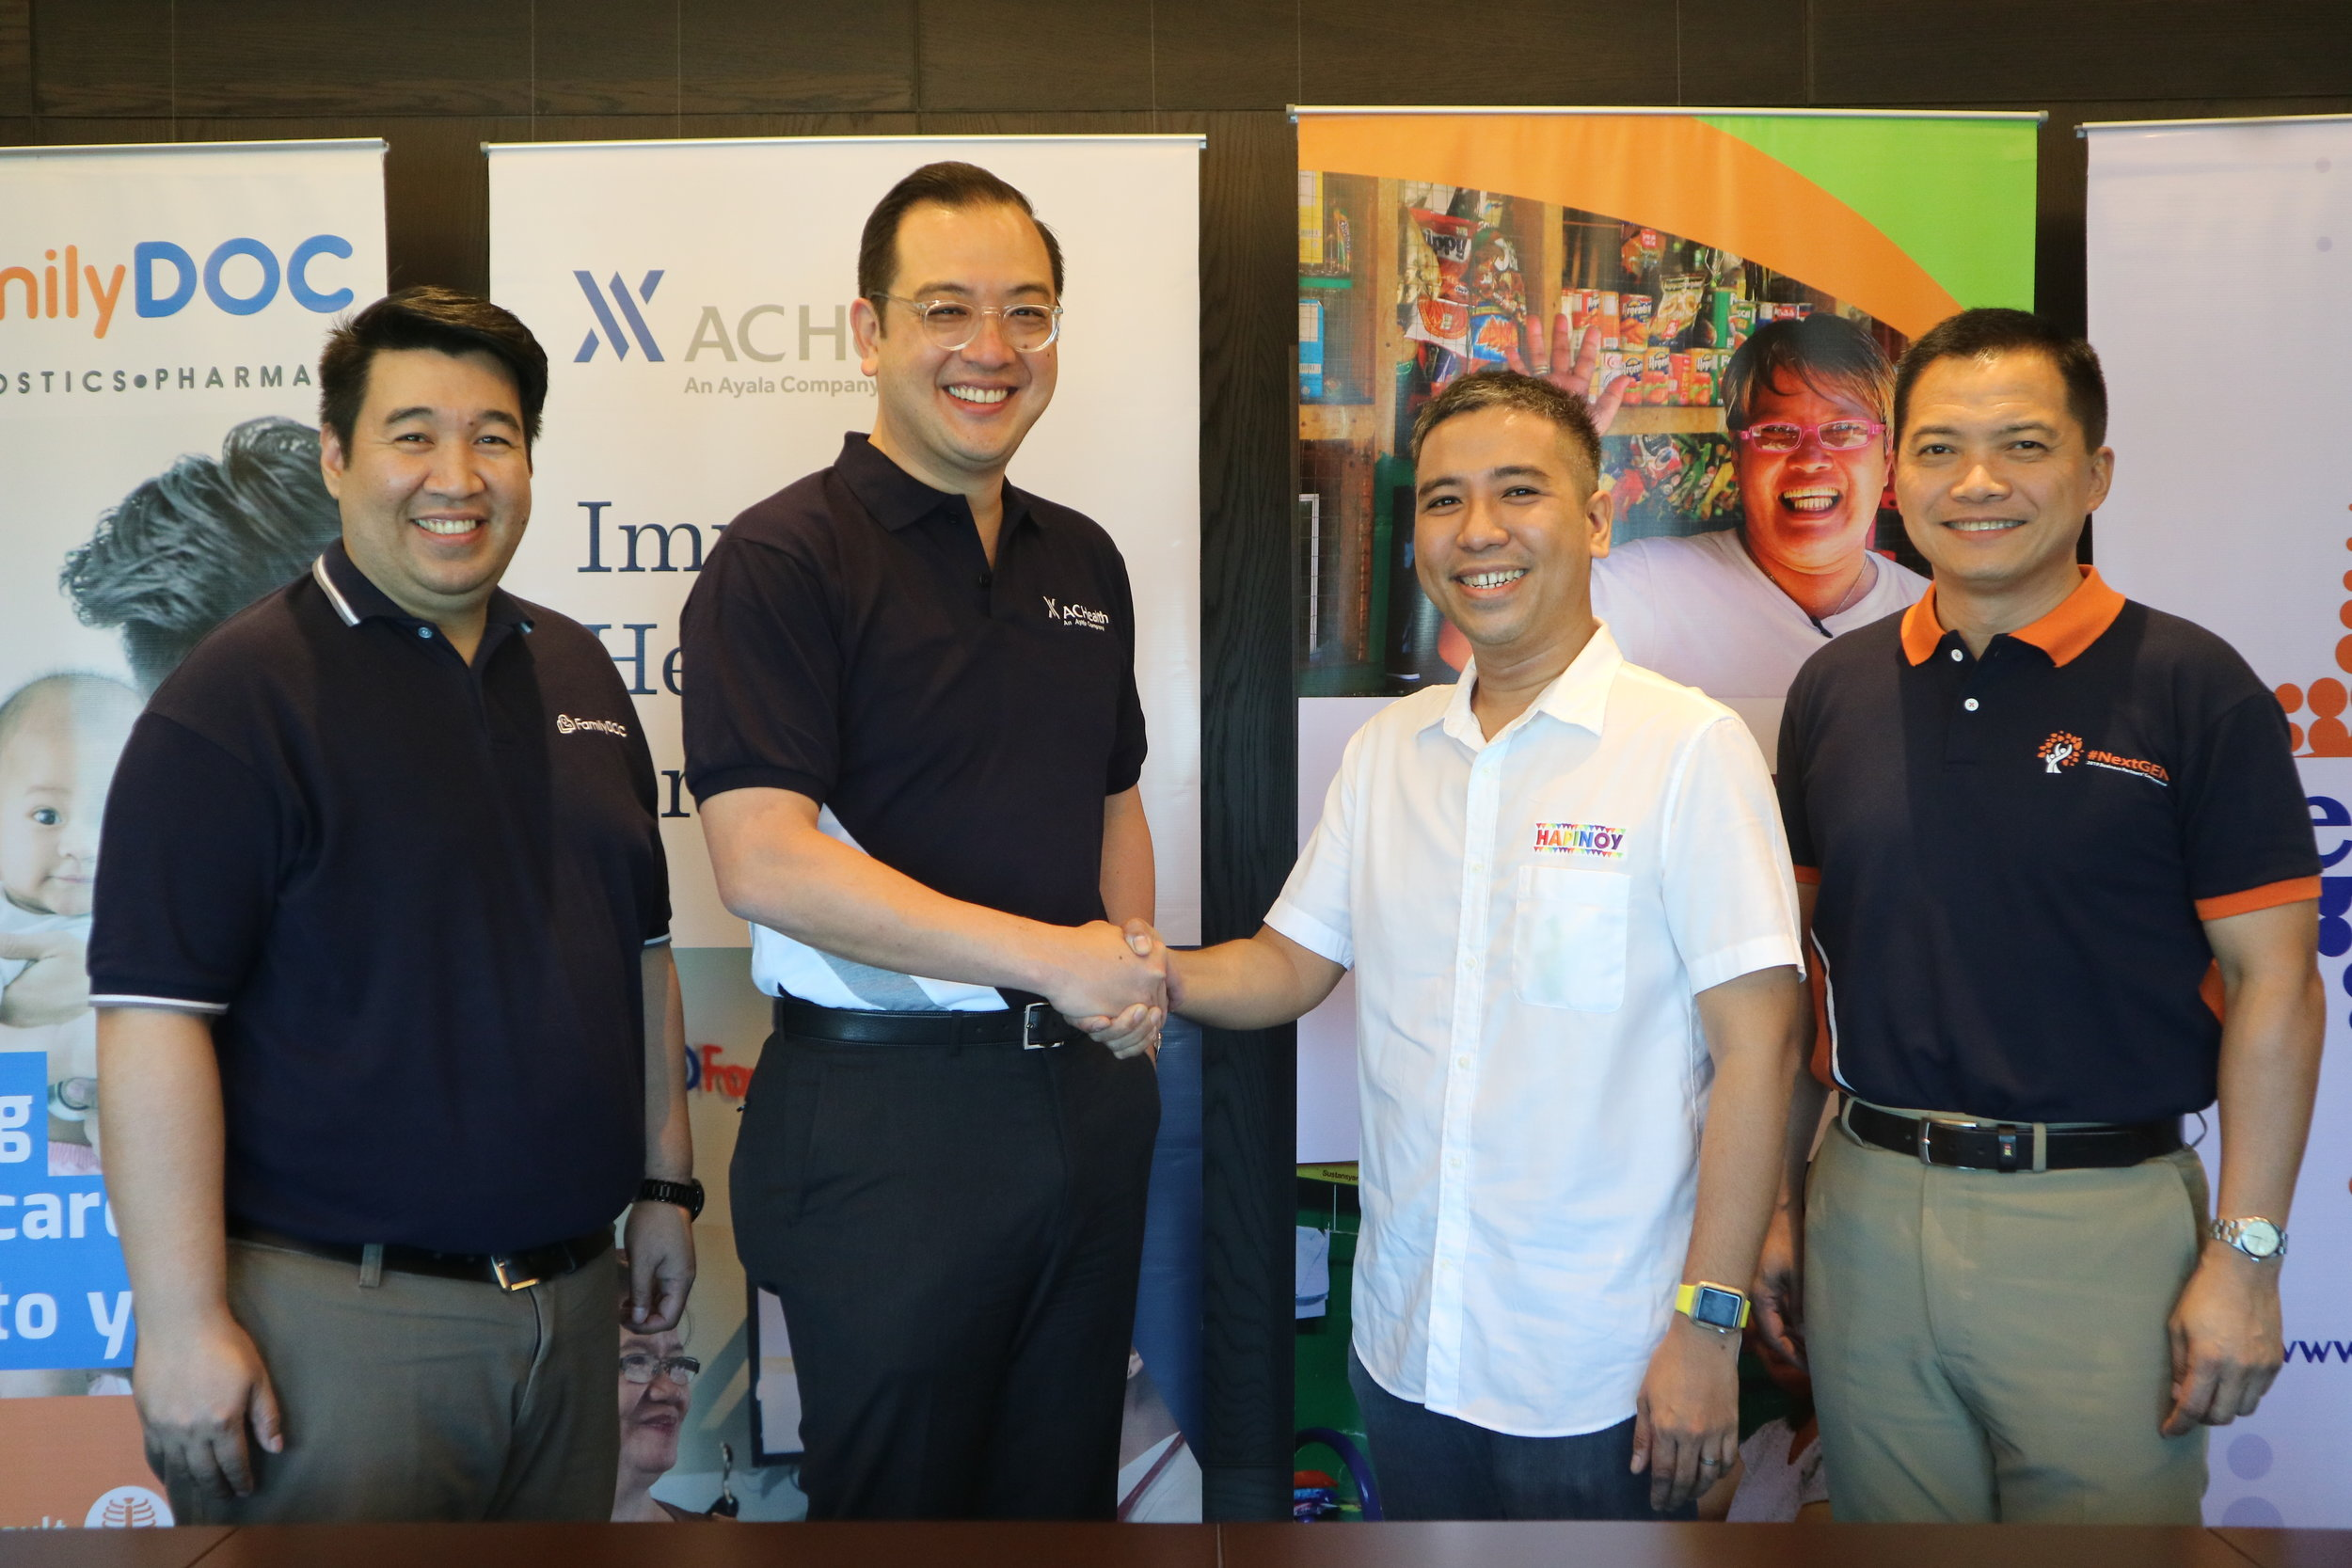 Last April 24, 2019, Mark Ruiz (middle-right), the president of Hapinoy and Paolo Borromeo (middle-left), the president and CEO of AC Health together with Dino Francisco (rightmost), the president and CEO of Generika Drugstore, and Raymund Paul Darroca (leftmost), the General Manager of FamilyDOC formally announced their partnership during the ceremonial signing in Makati City.